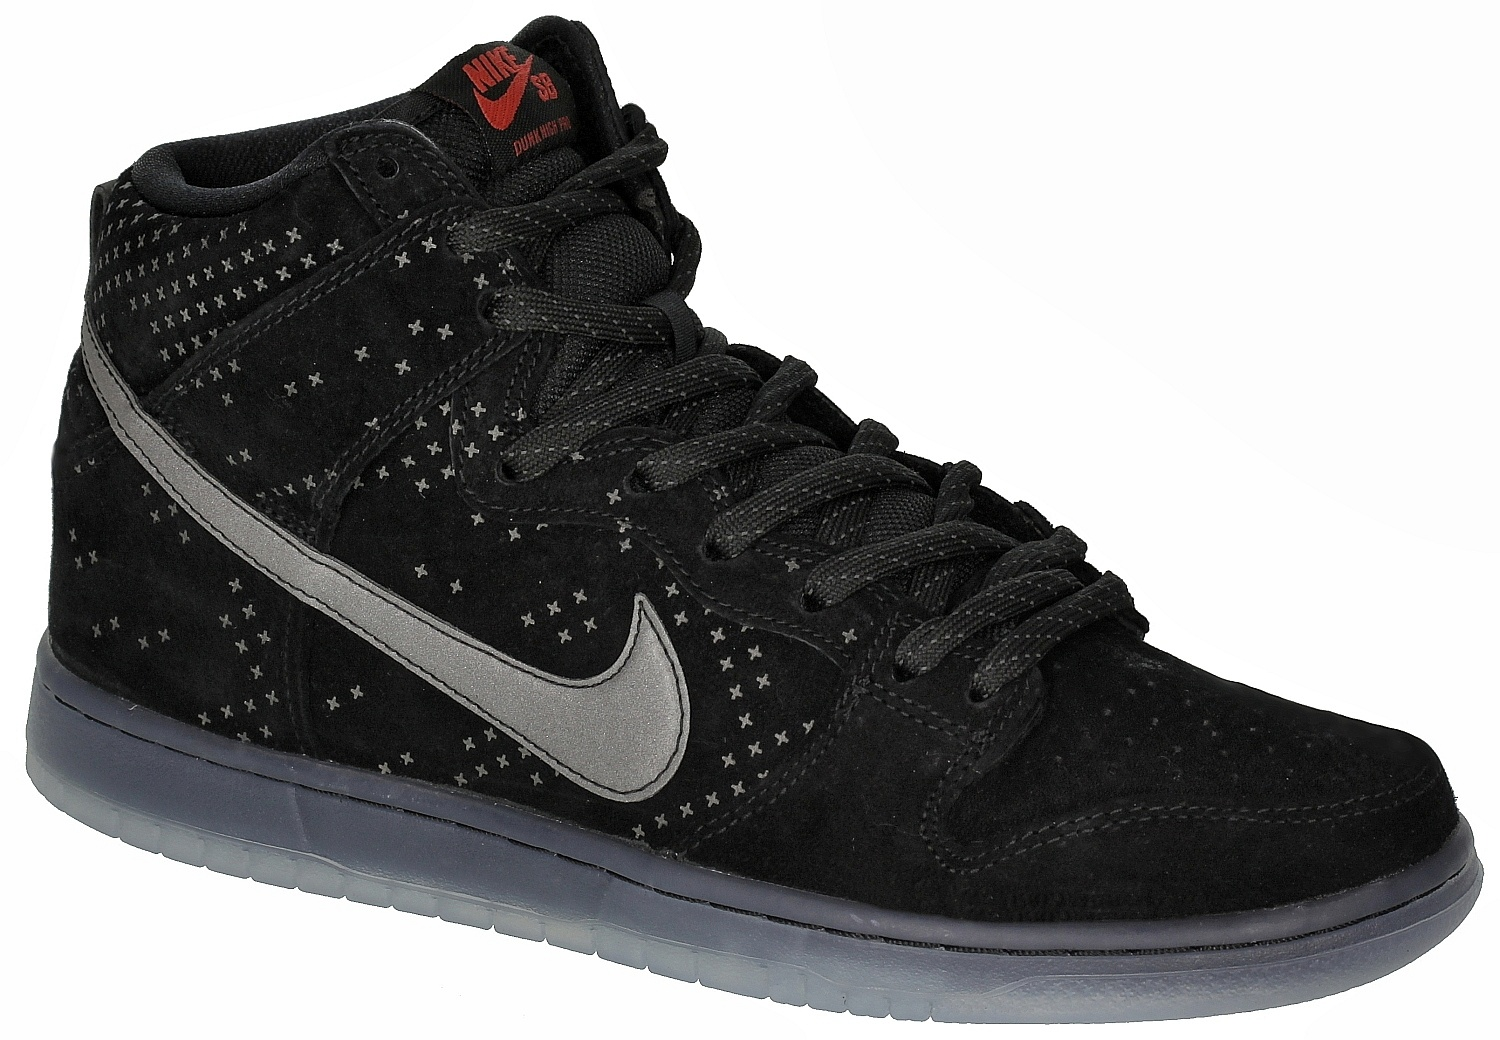 online store 7d5af 0a8ca boty Nike SB Dunk High Premium Flash - Black Black Clear - Snowboard shop,  skateshop - blackcomb.cz